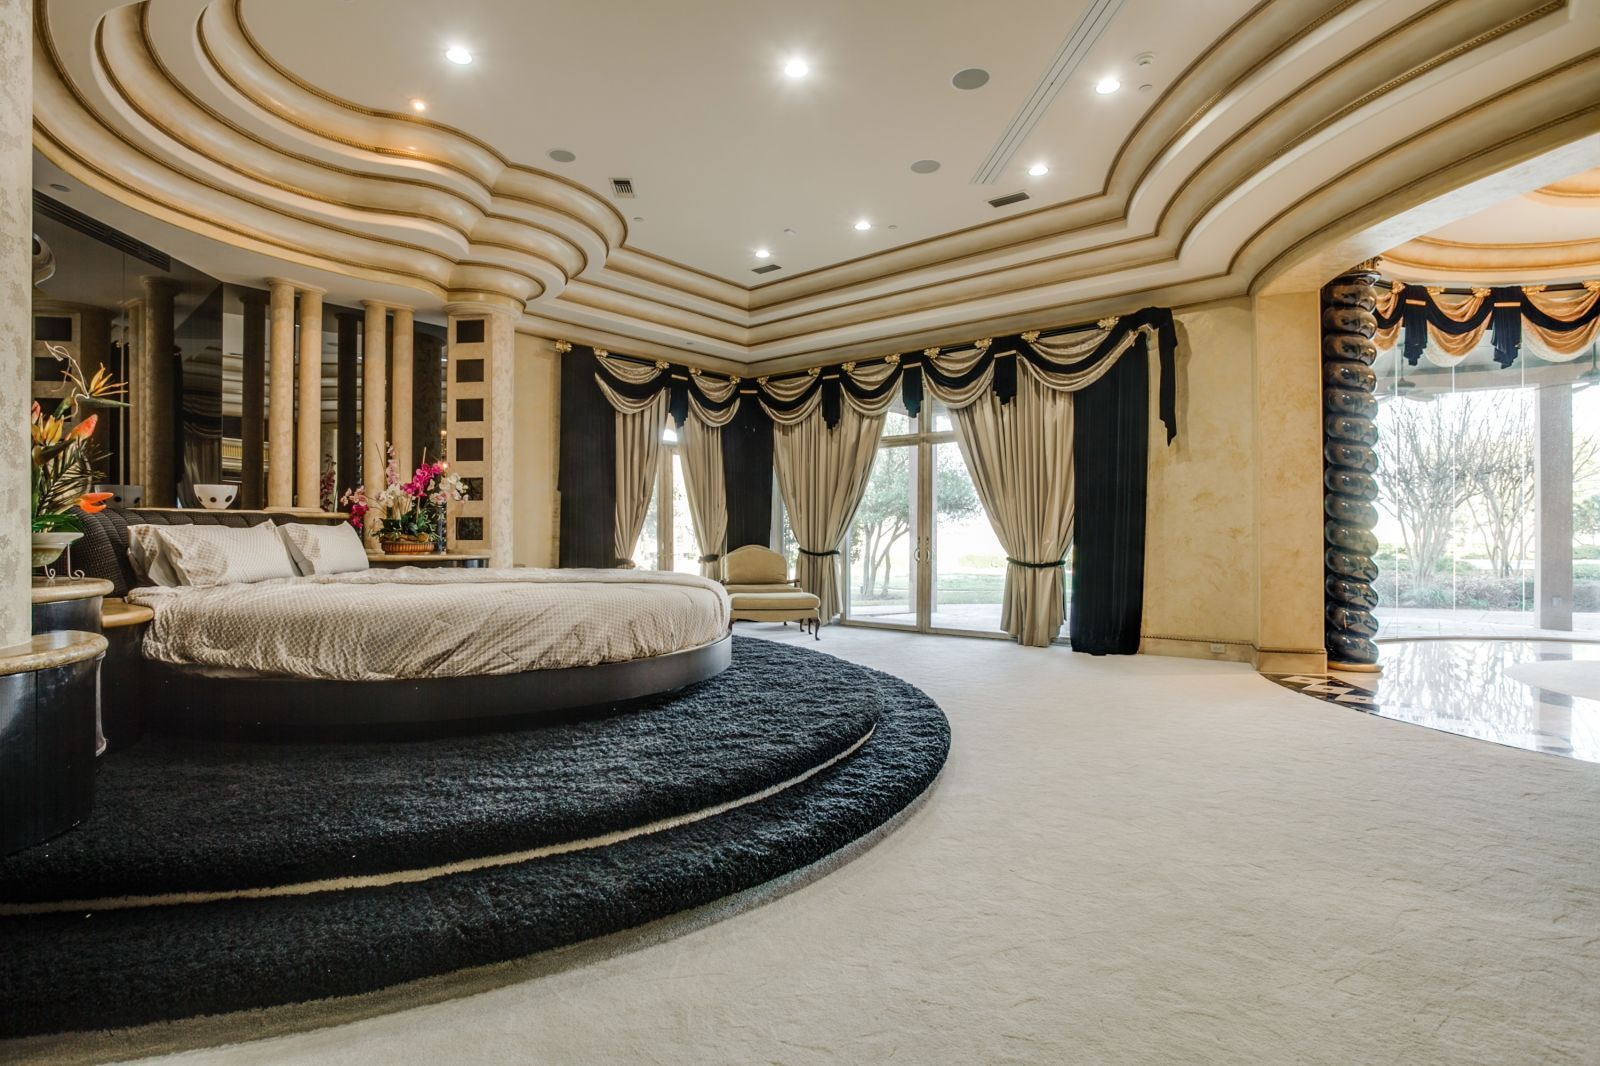 There S A Football Field Inside This Texas Mansion Luxury Bedroom Master Luxurious Bedrooms Luxury Bedroom Design